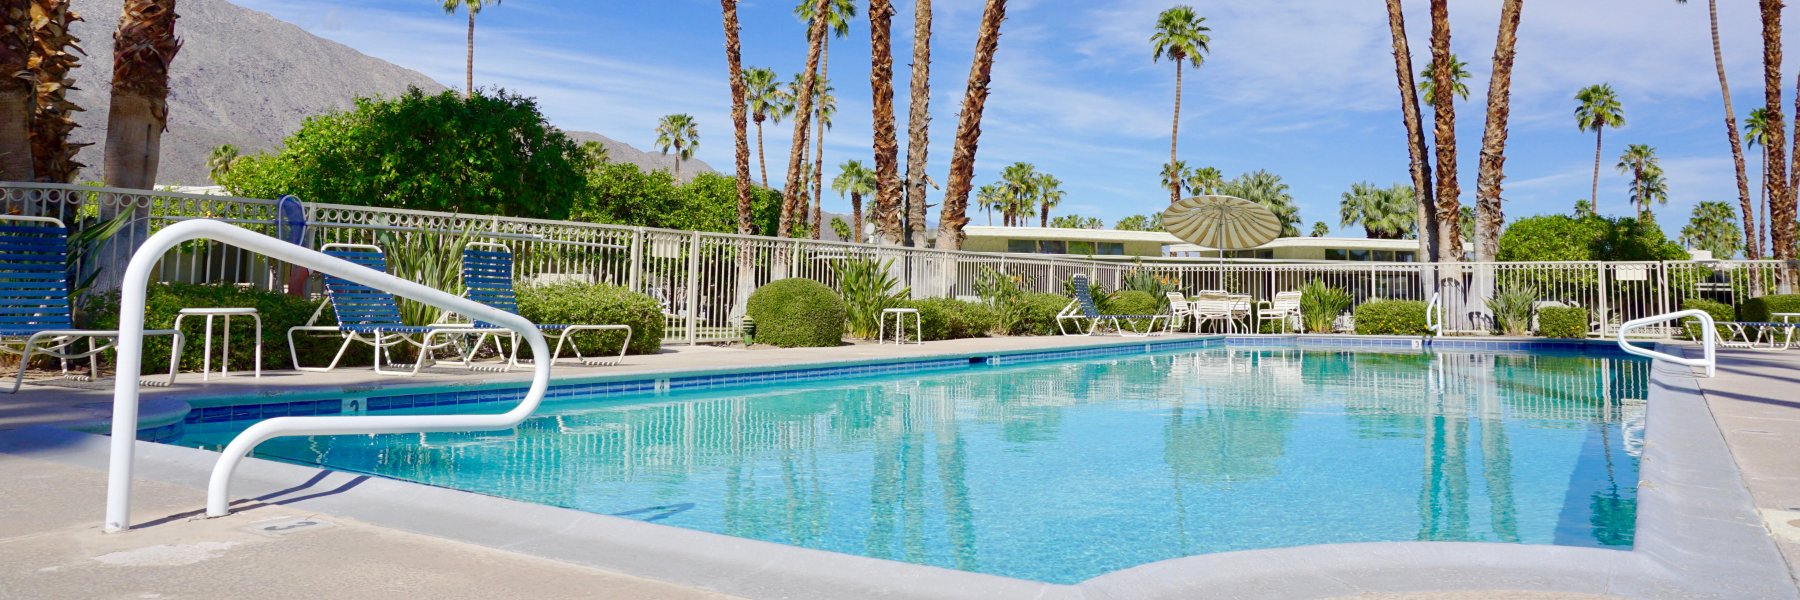 Canyon Estates is a community of homes in Palm Springs California